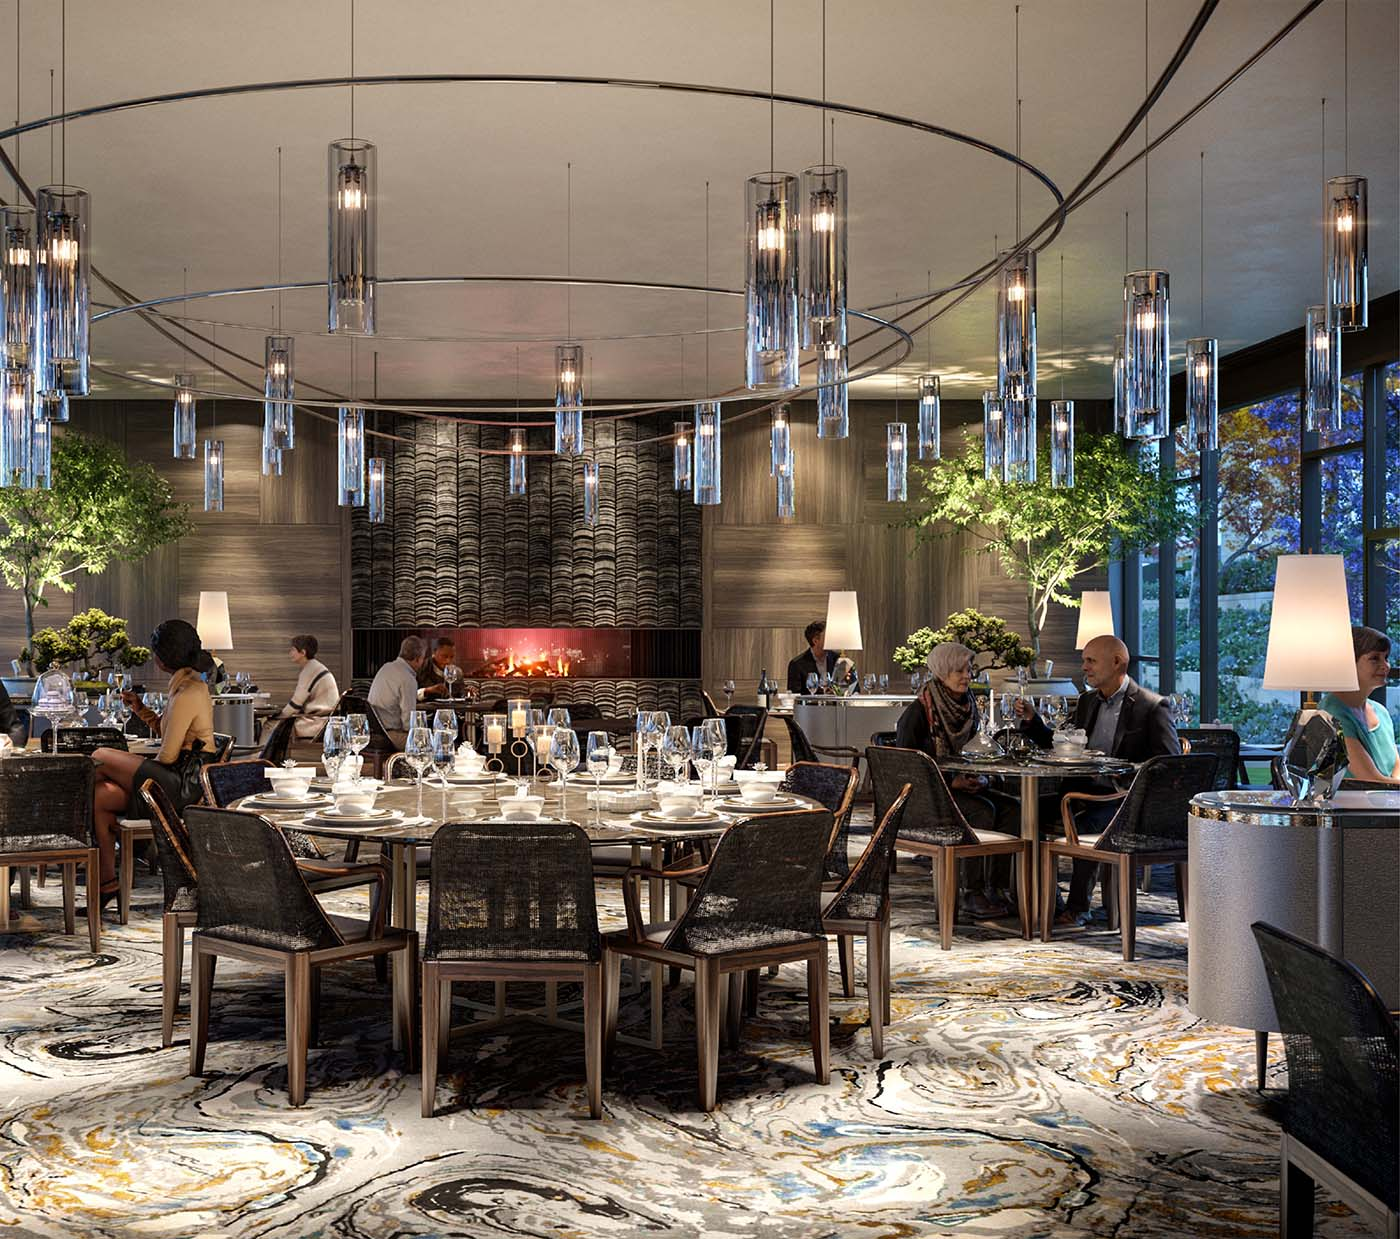 Restaurant area of a retirement village with people talking and eating surrounded by a firepit, elegant lamps and artistic rug.